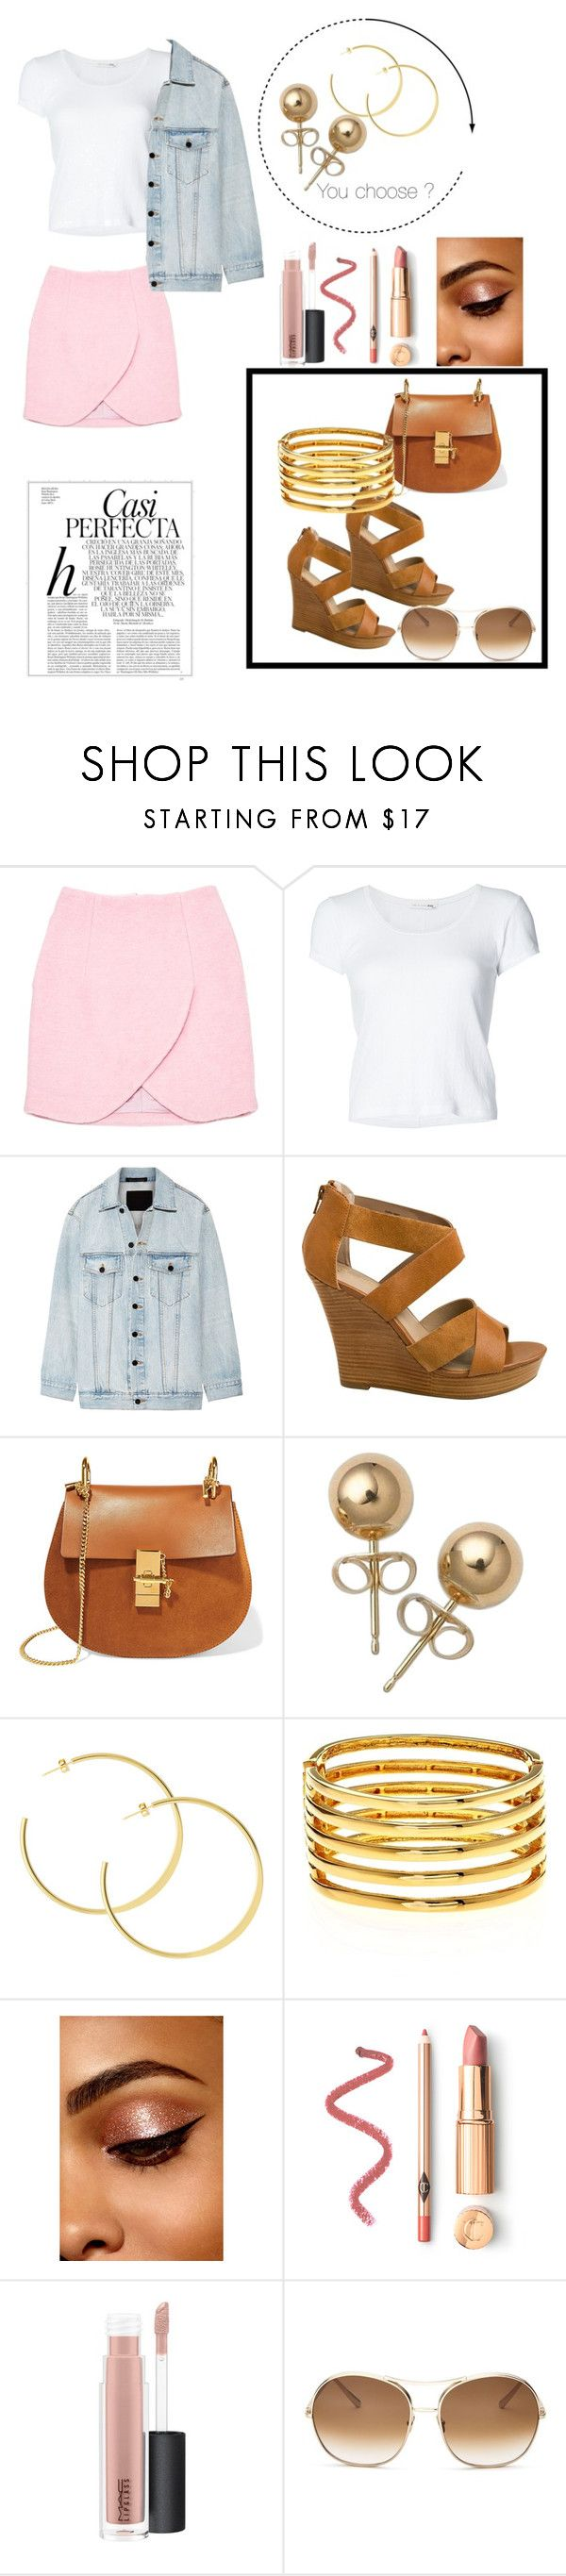 """Untitled #248"" by ilikepancakes248 ❤ liked on Polyvore featuring Carven, rag & bone, Alexander Wang, Seychelles, Chloé, Bling Jewelry, Kenneth Jay Lane, Whiteley and MAC Cosmetics"